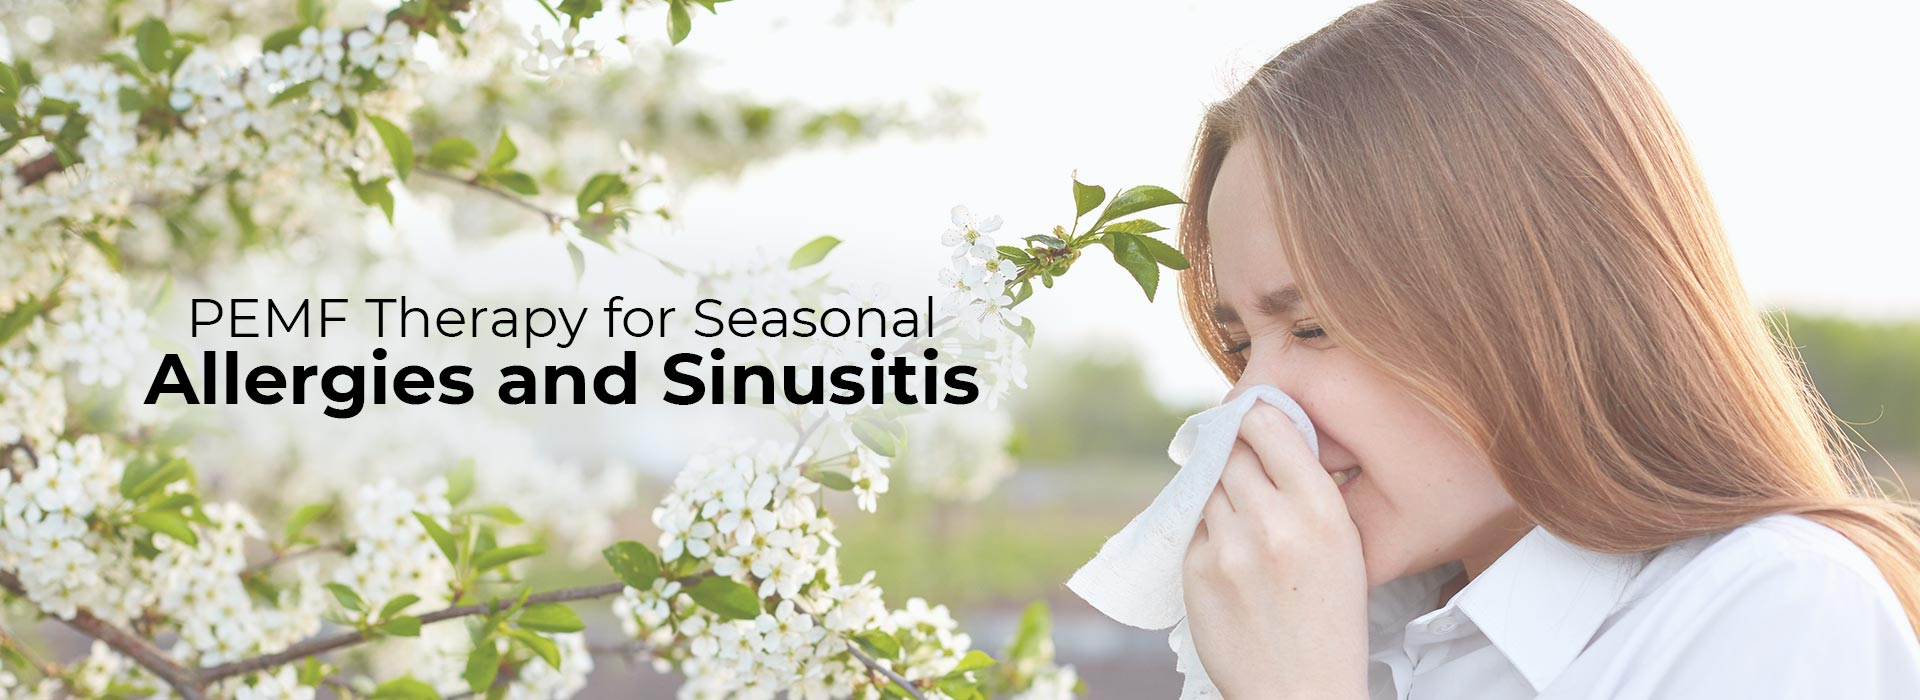 PEMF Therapy for Seasonal Allergies and Sinusitis